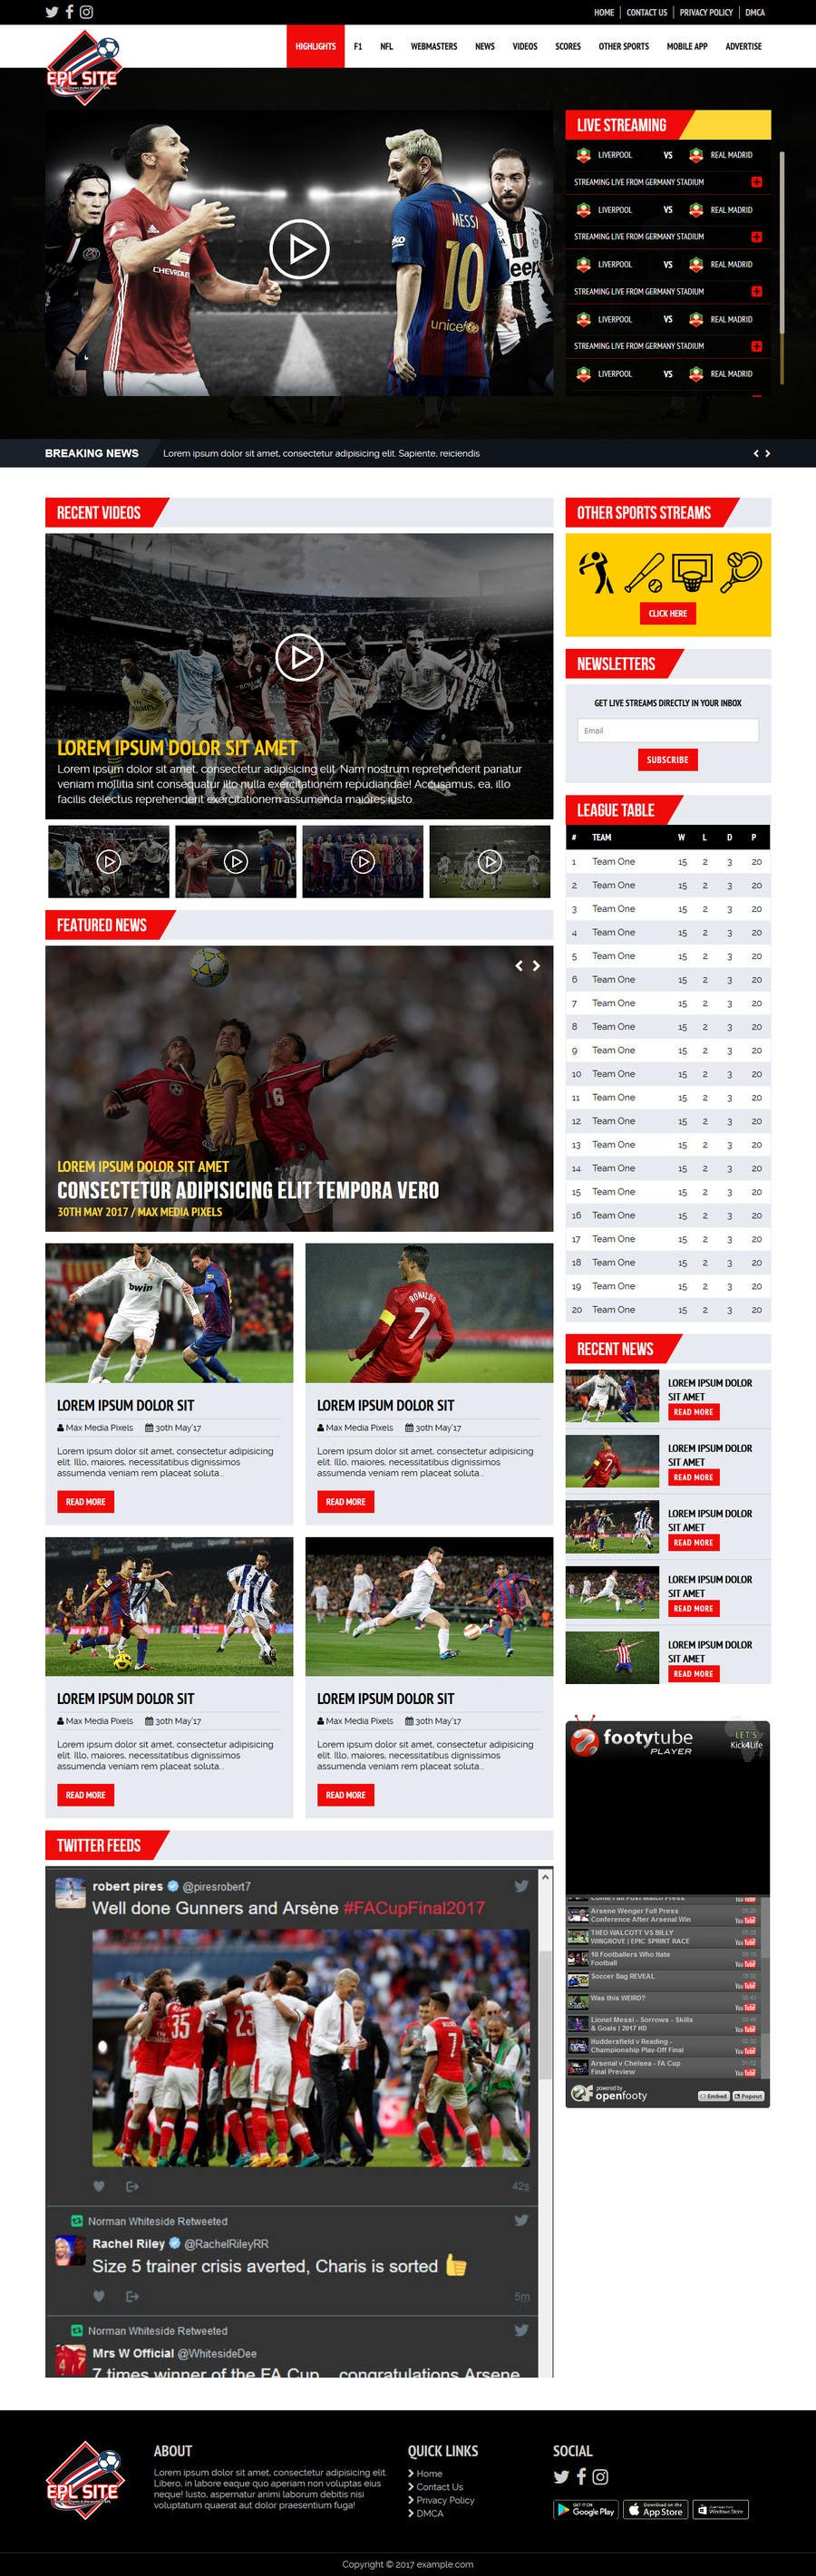 Proposition n°41 du concours Design a Mockup for Football website